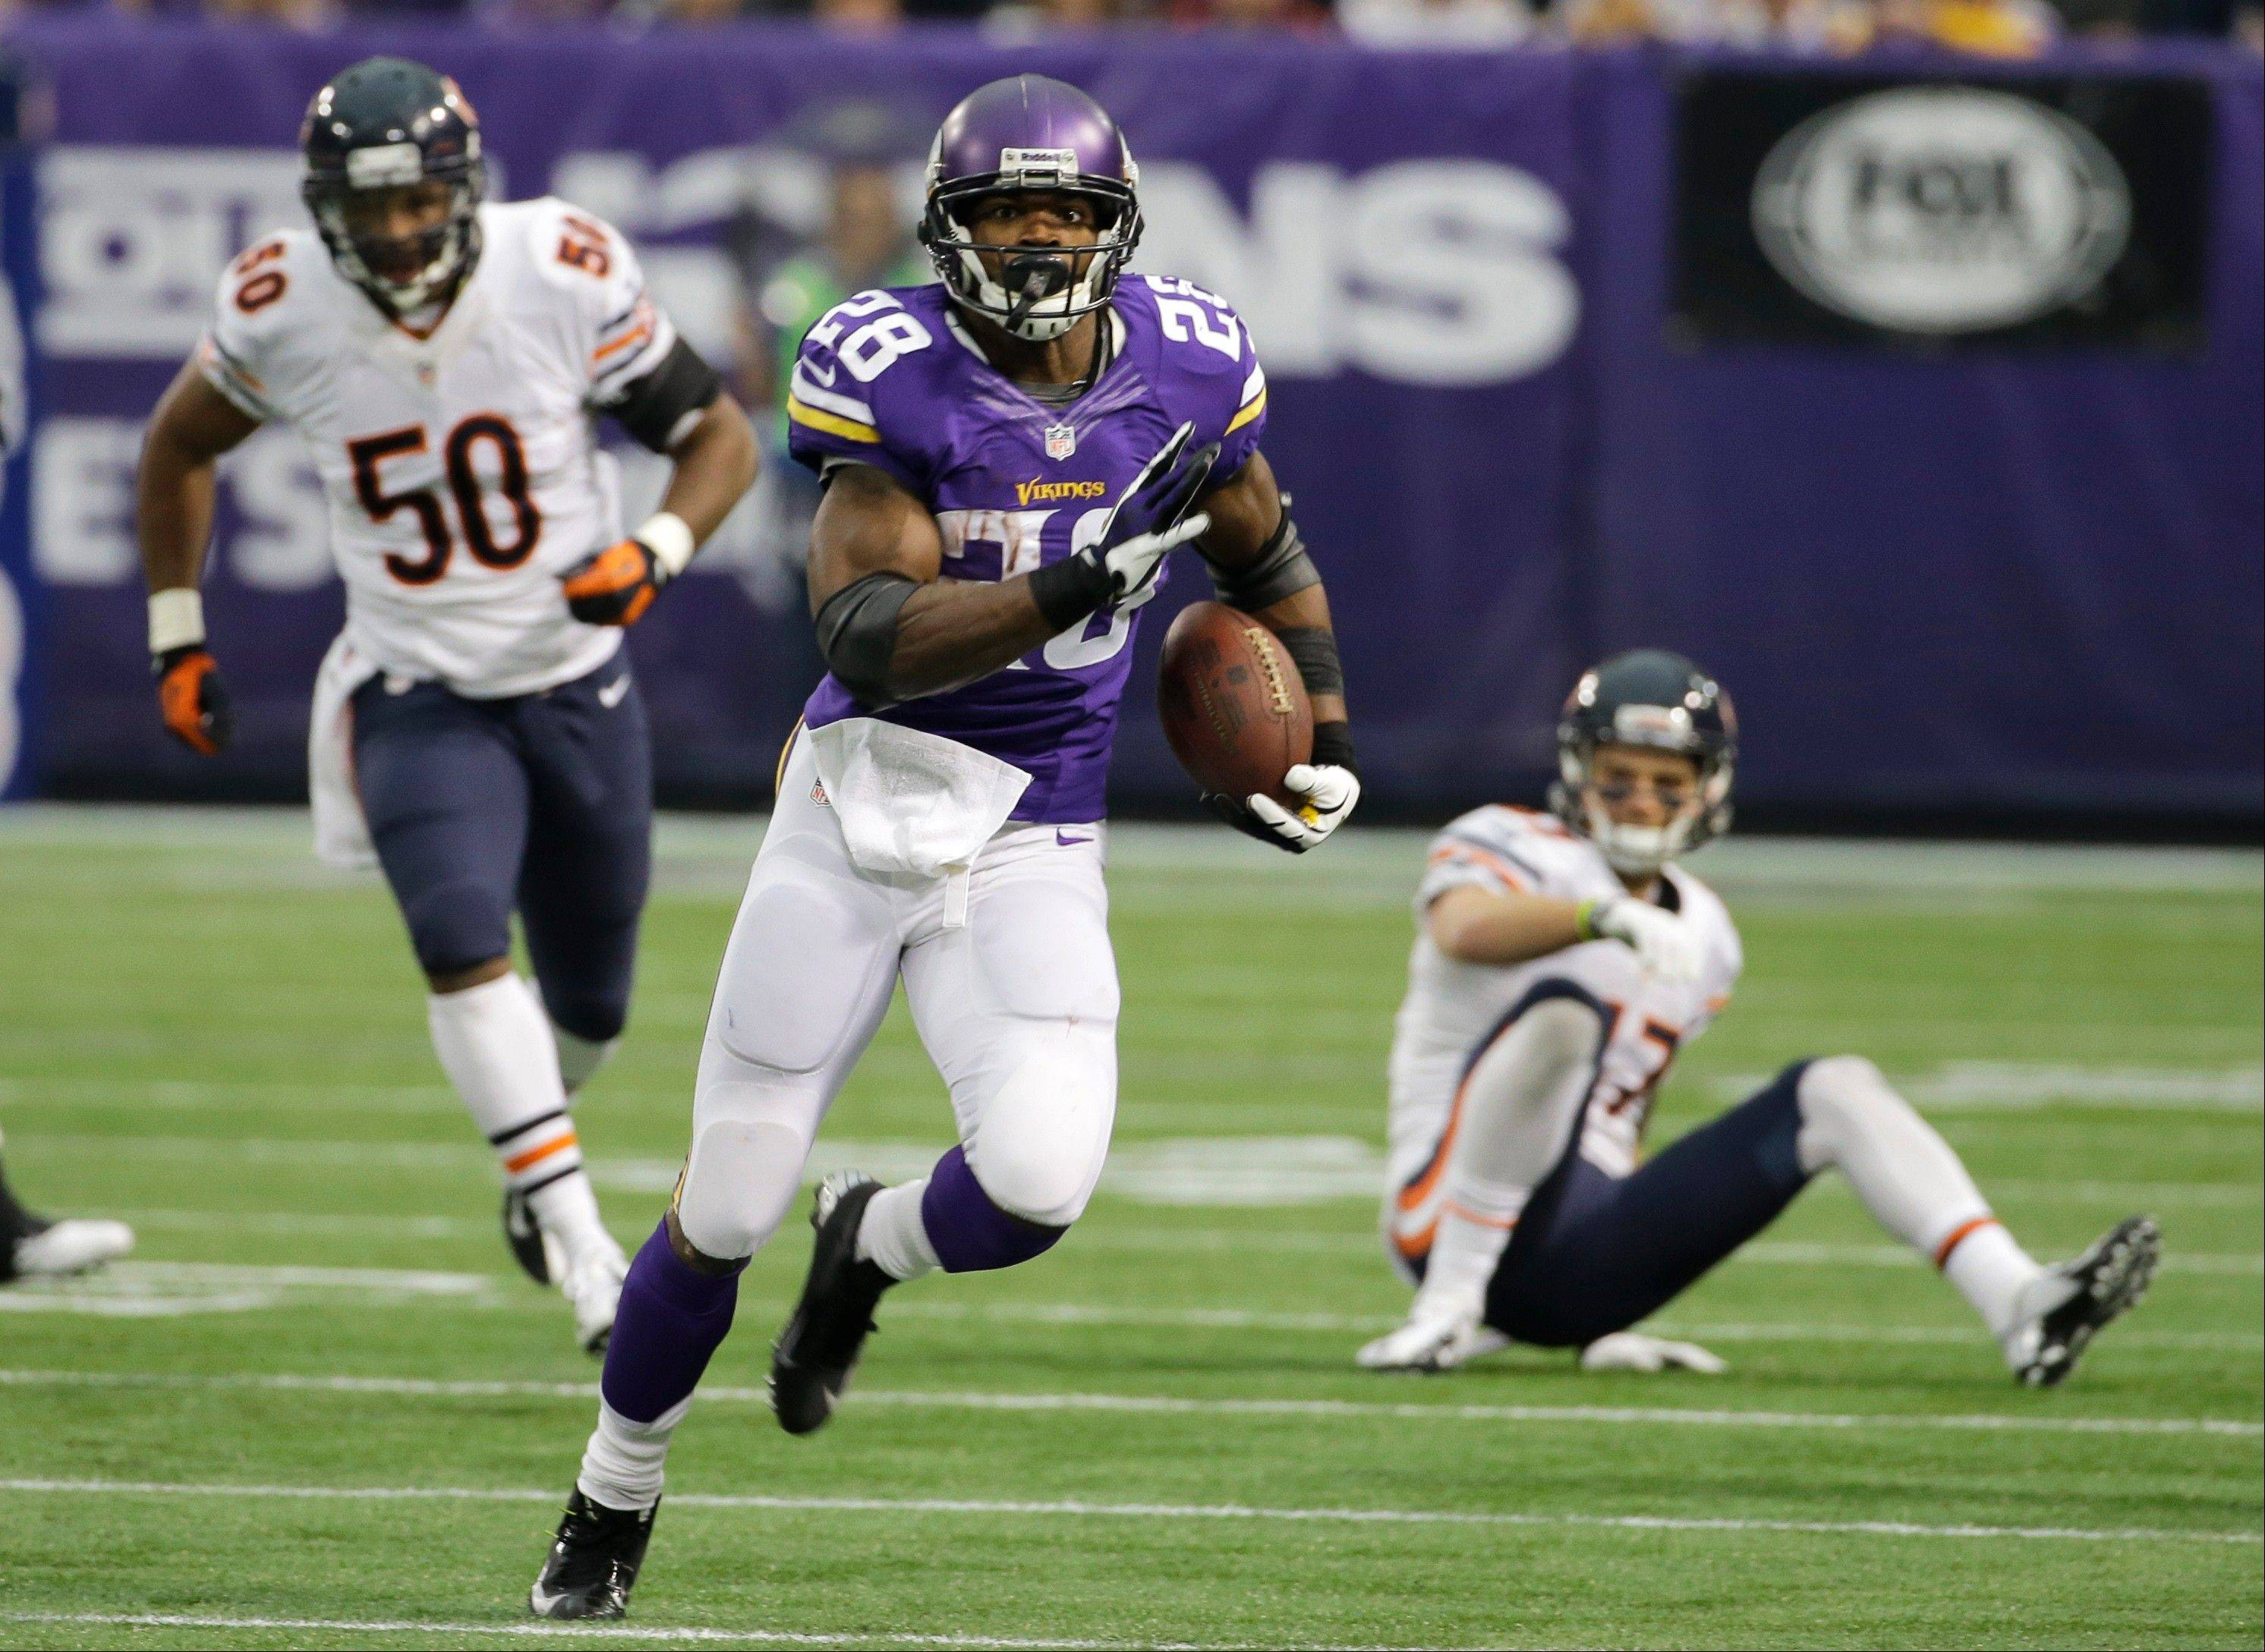 Minnesota Vikings running back Adrian Peterson, center, runs from Chicago Bears defenders James Anderson, left, and Chris Conte, right, during the first half.